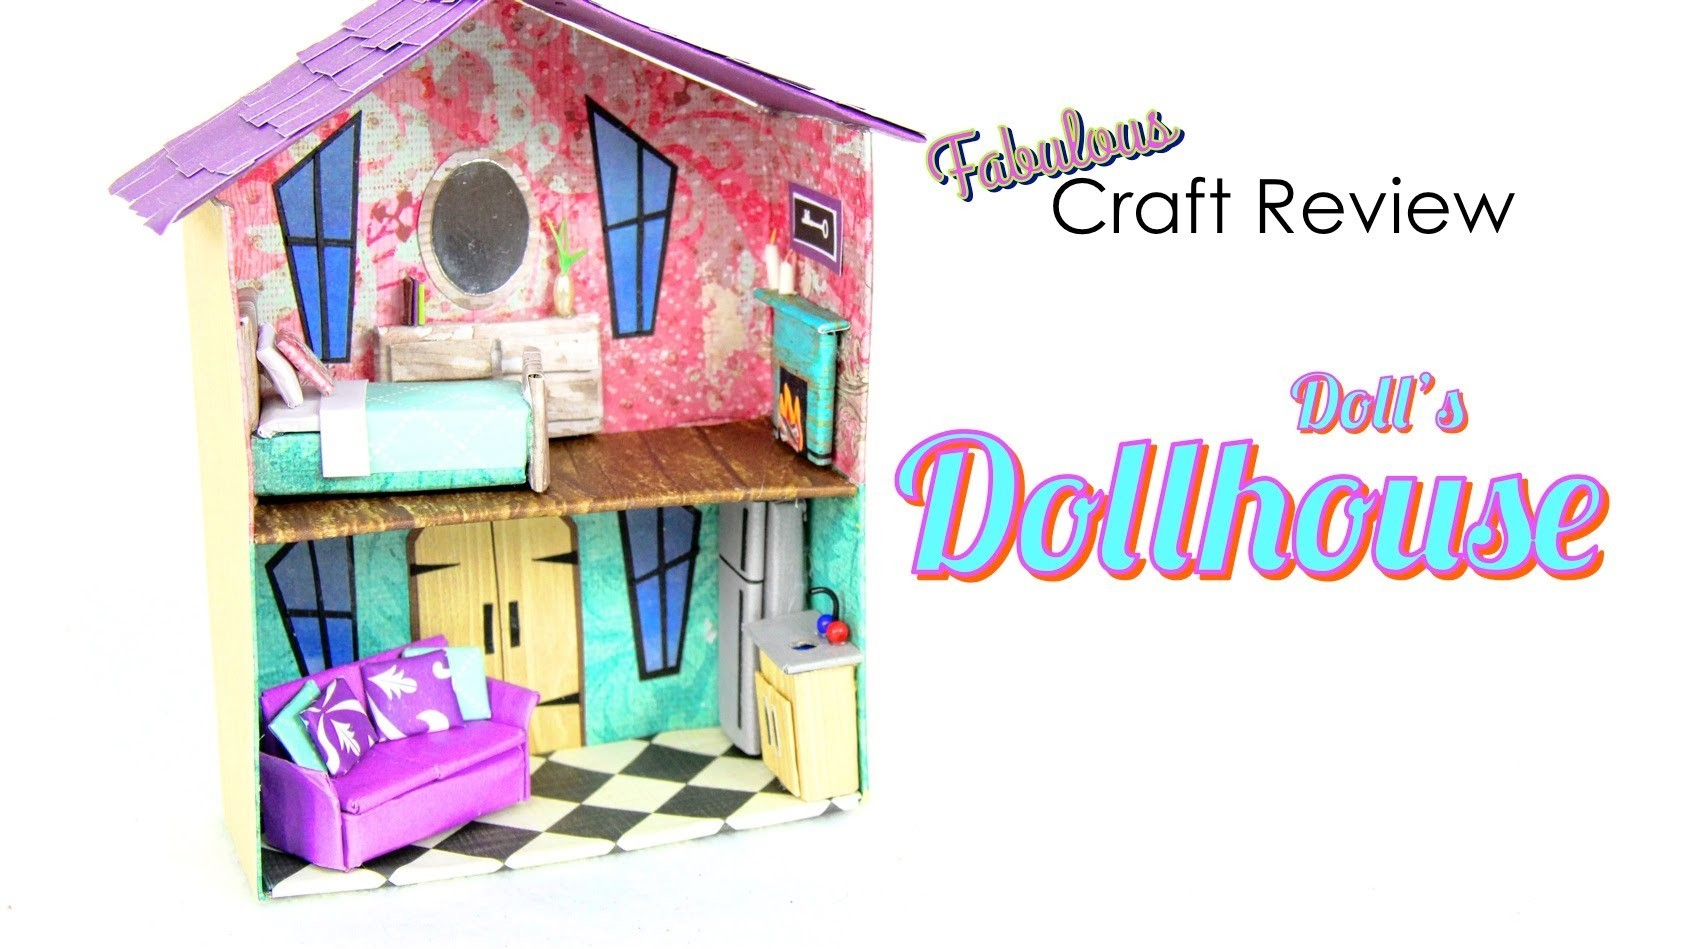 Fabulous Craft Review: Doll's Dollhouse